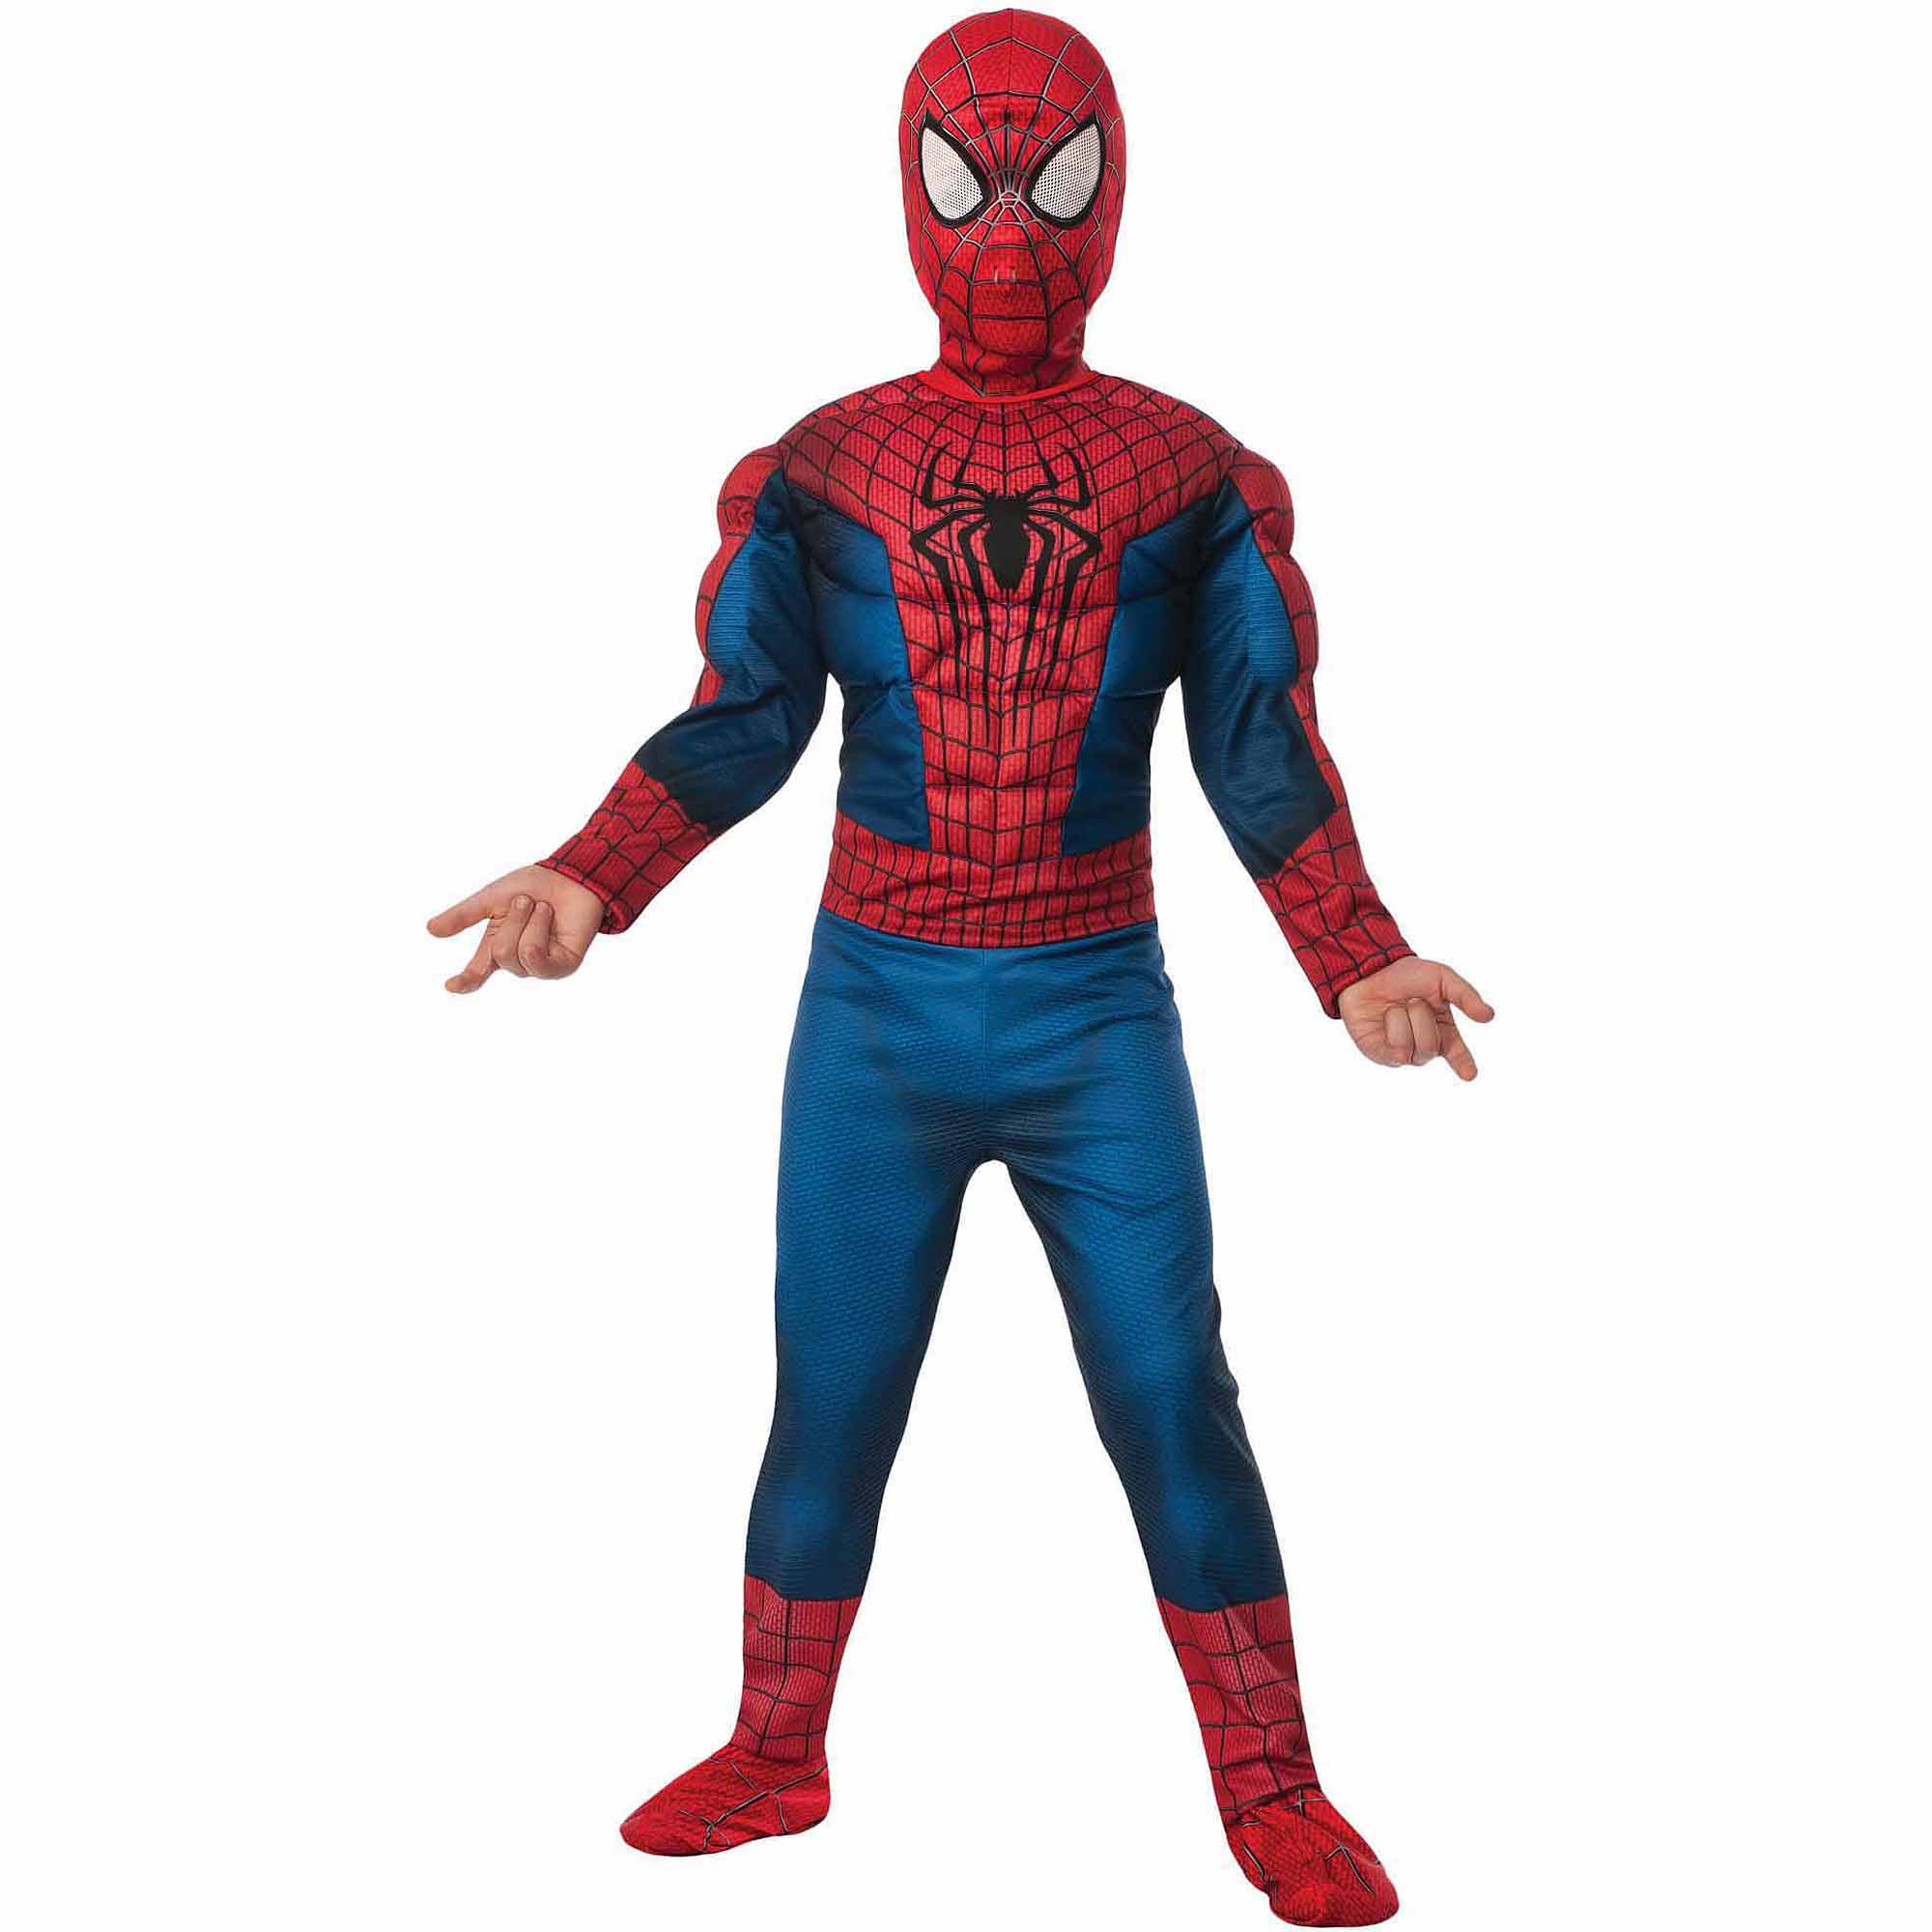 sc 1 st  Walmart & Spider-Man 2 Child Halloween Costume - Walmart.com